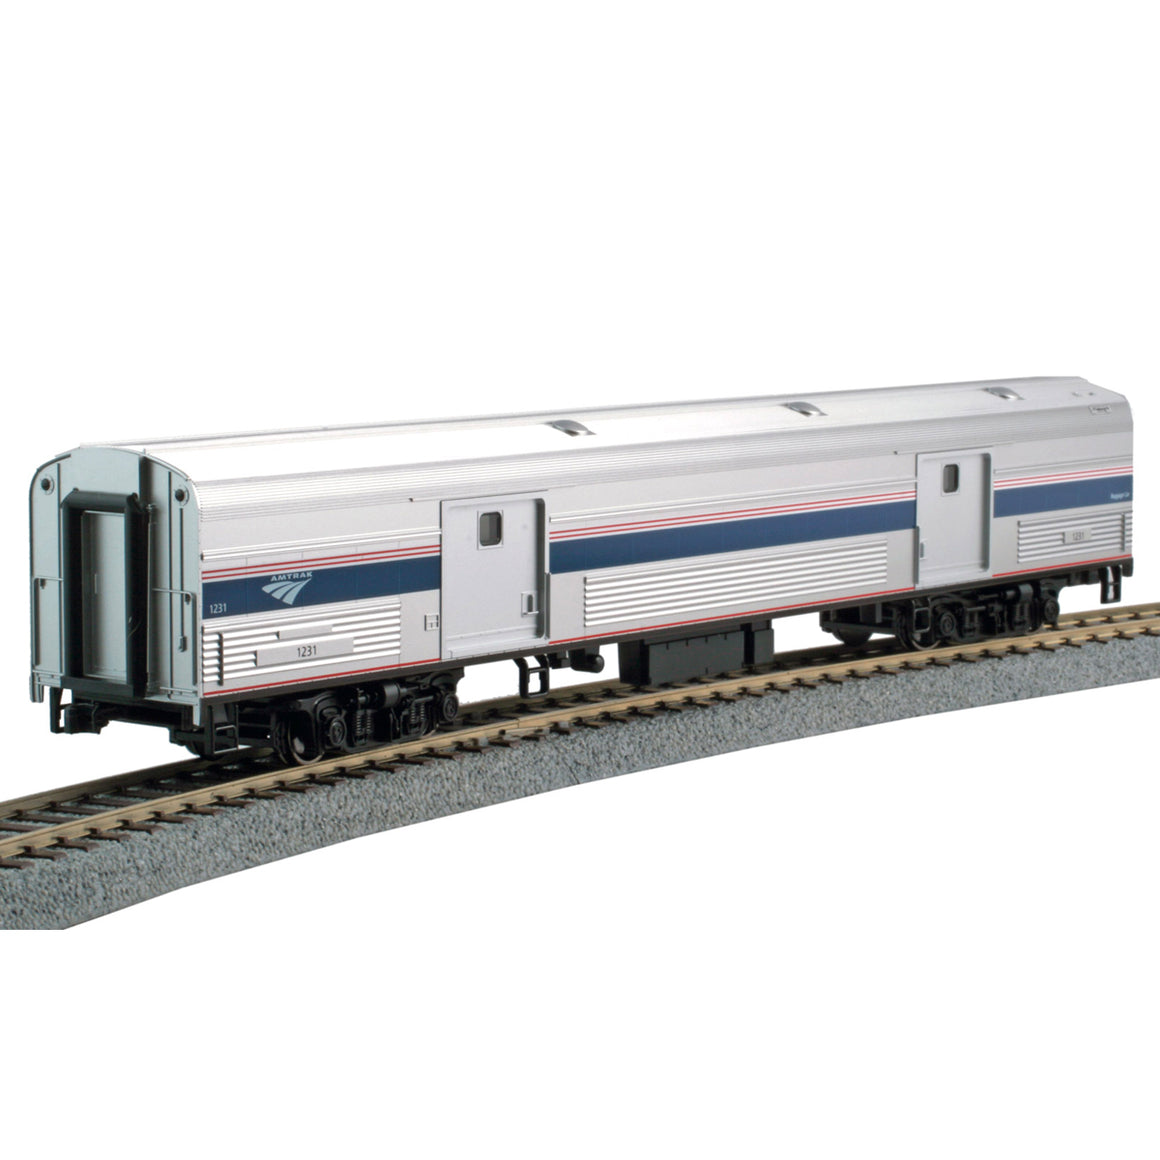 HO Scale: Amtrak Baggage Car - Phase VI